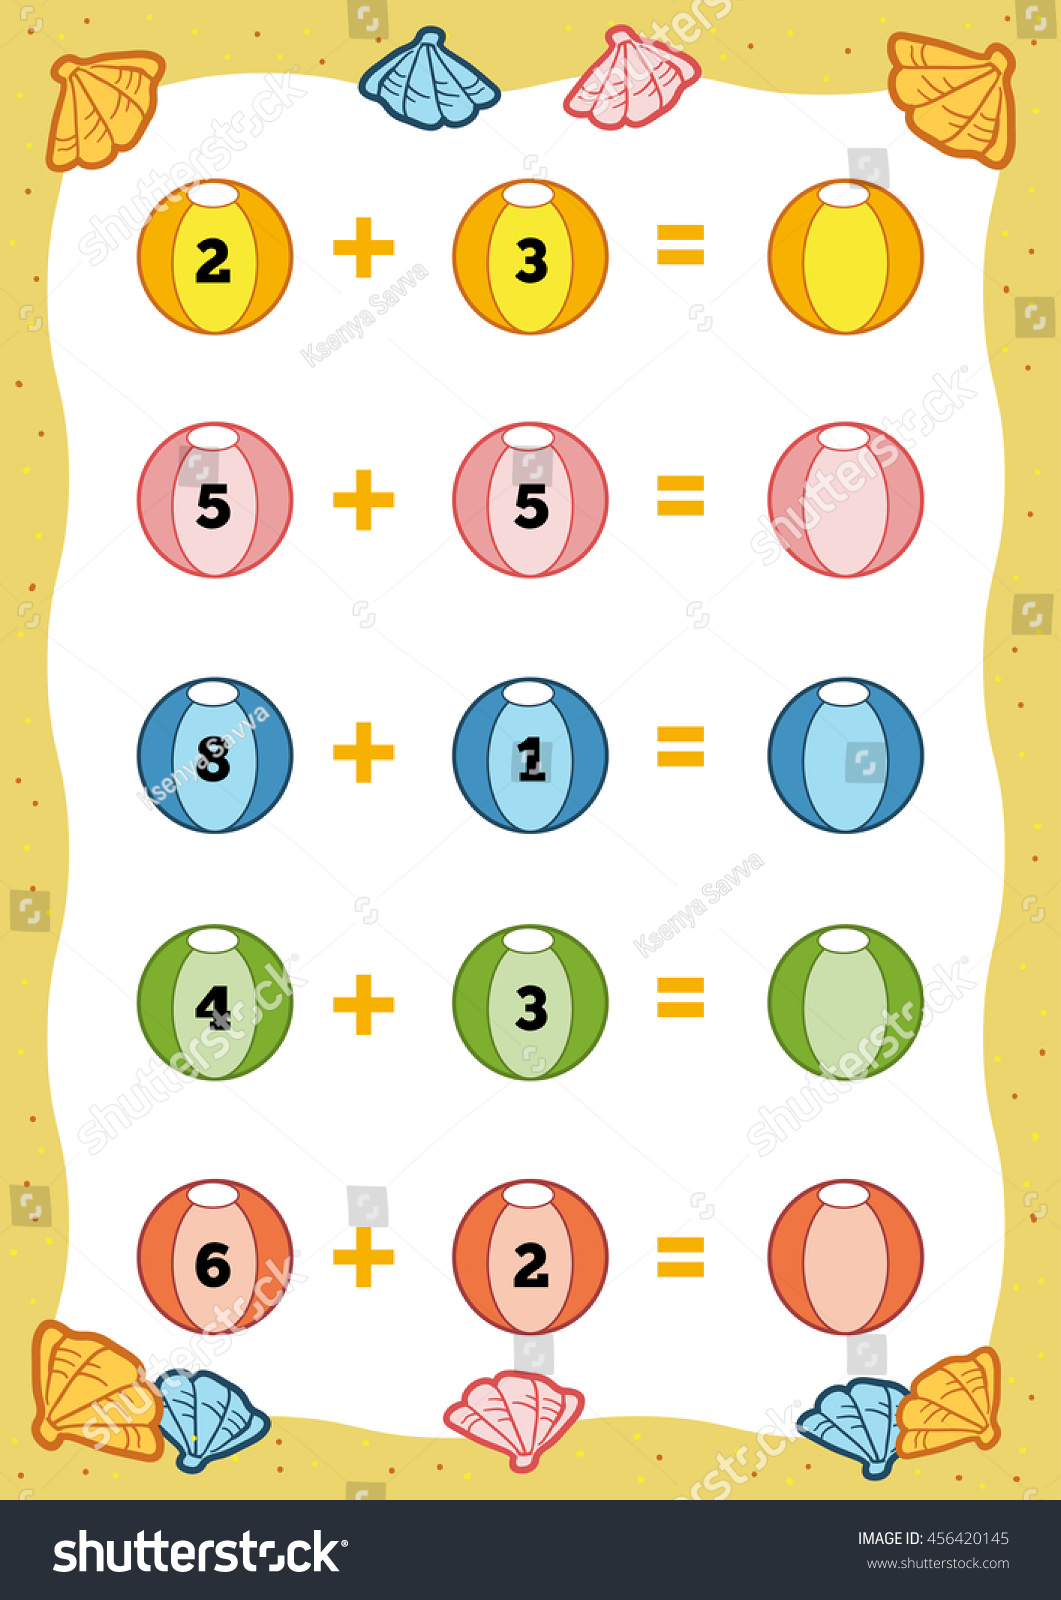 Worksheet Count The Numbers counting game for preschool children educational a mathematical count the numbers in preview save to lightbox